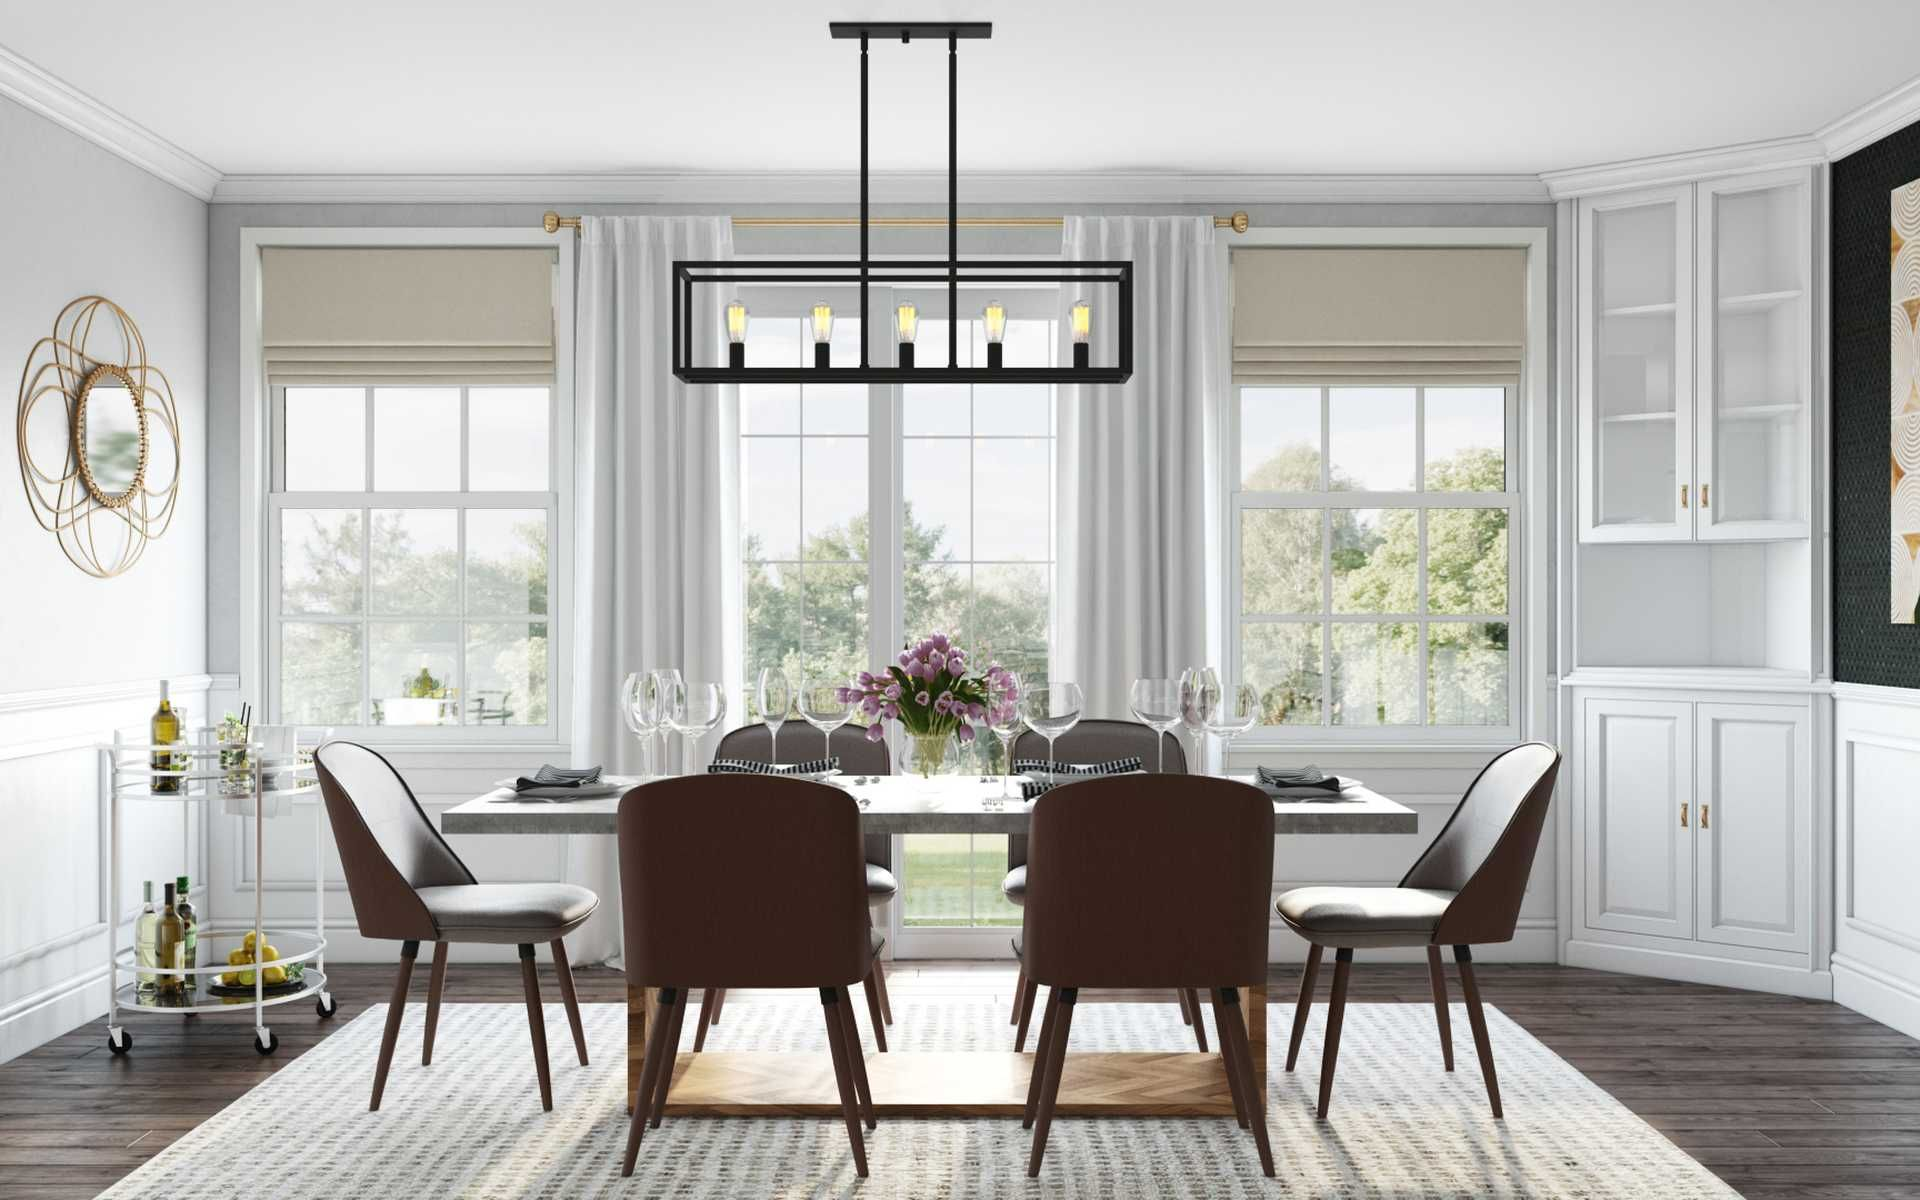 Modern Bohemian Dining Room Design By Havenly Interior Designer Leigh In 2021 Dining Room Design Interior Design Dining Room Dining Room Interiors